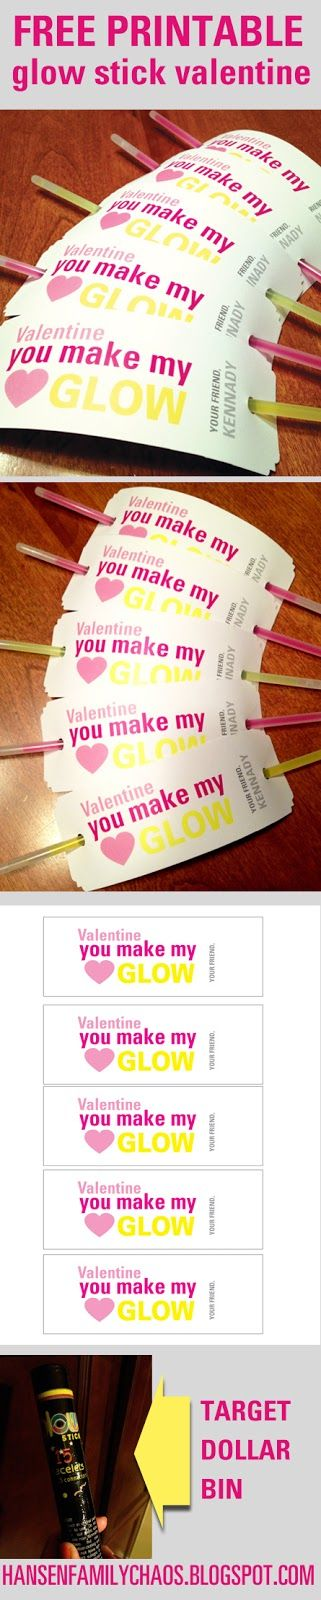 Non-Candy Valentine's Day Class Gift Ideas - Princess ... |Pinterest Glow Stick Valentines